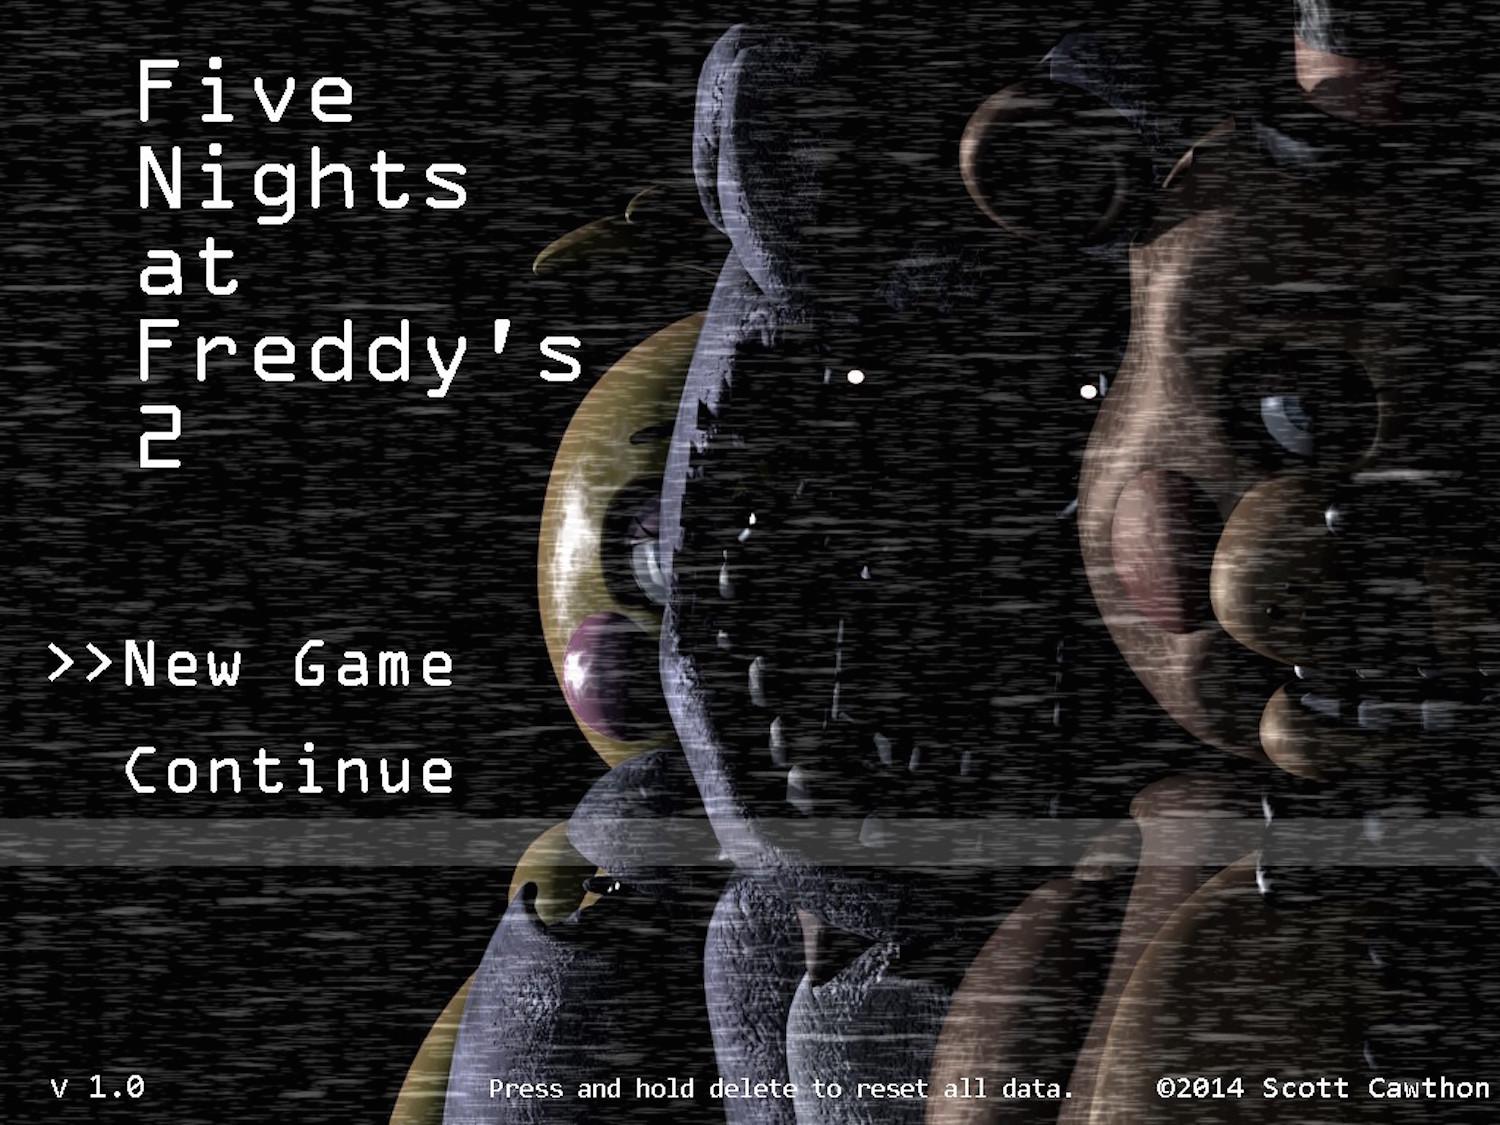 Five nights at freddys 2 download demo | Five Nights at